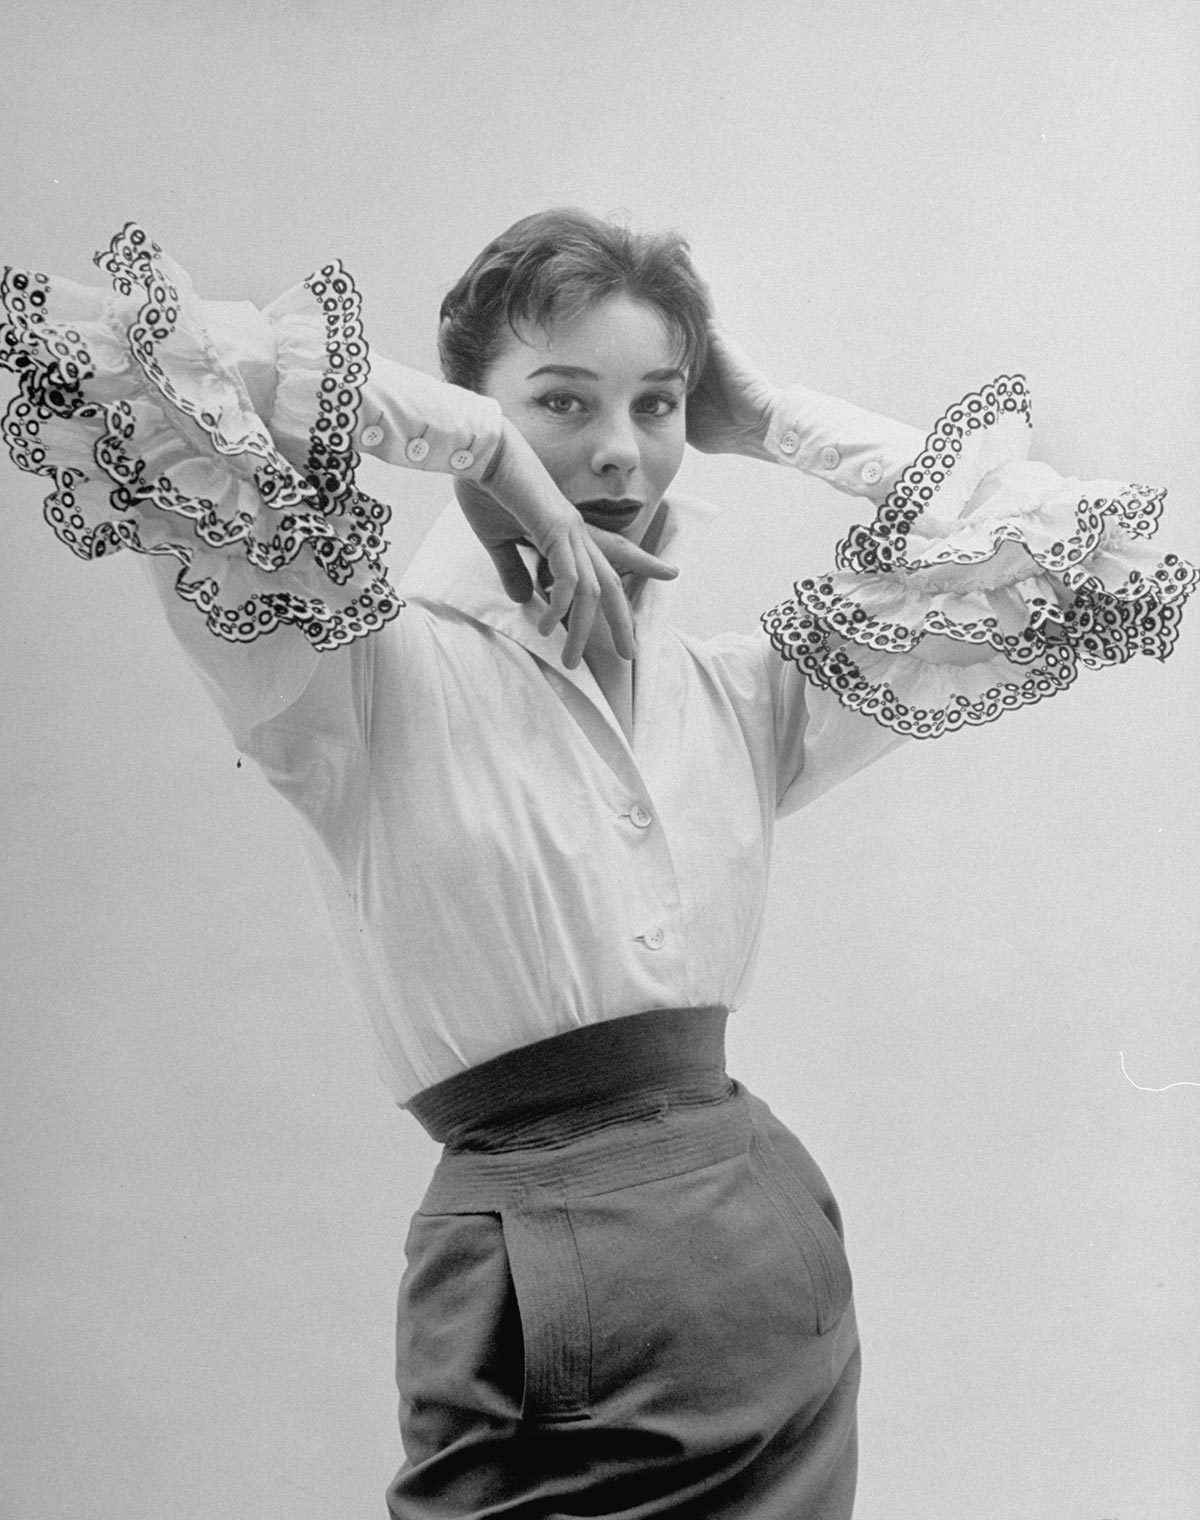 Le 2 février 1952: Bettina Graziani porte la blouse Bettina lors de la première collection Haute Couture de Hubert de Givenchy. Photo: GETTY IMAGES.